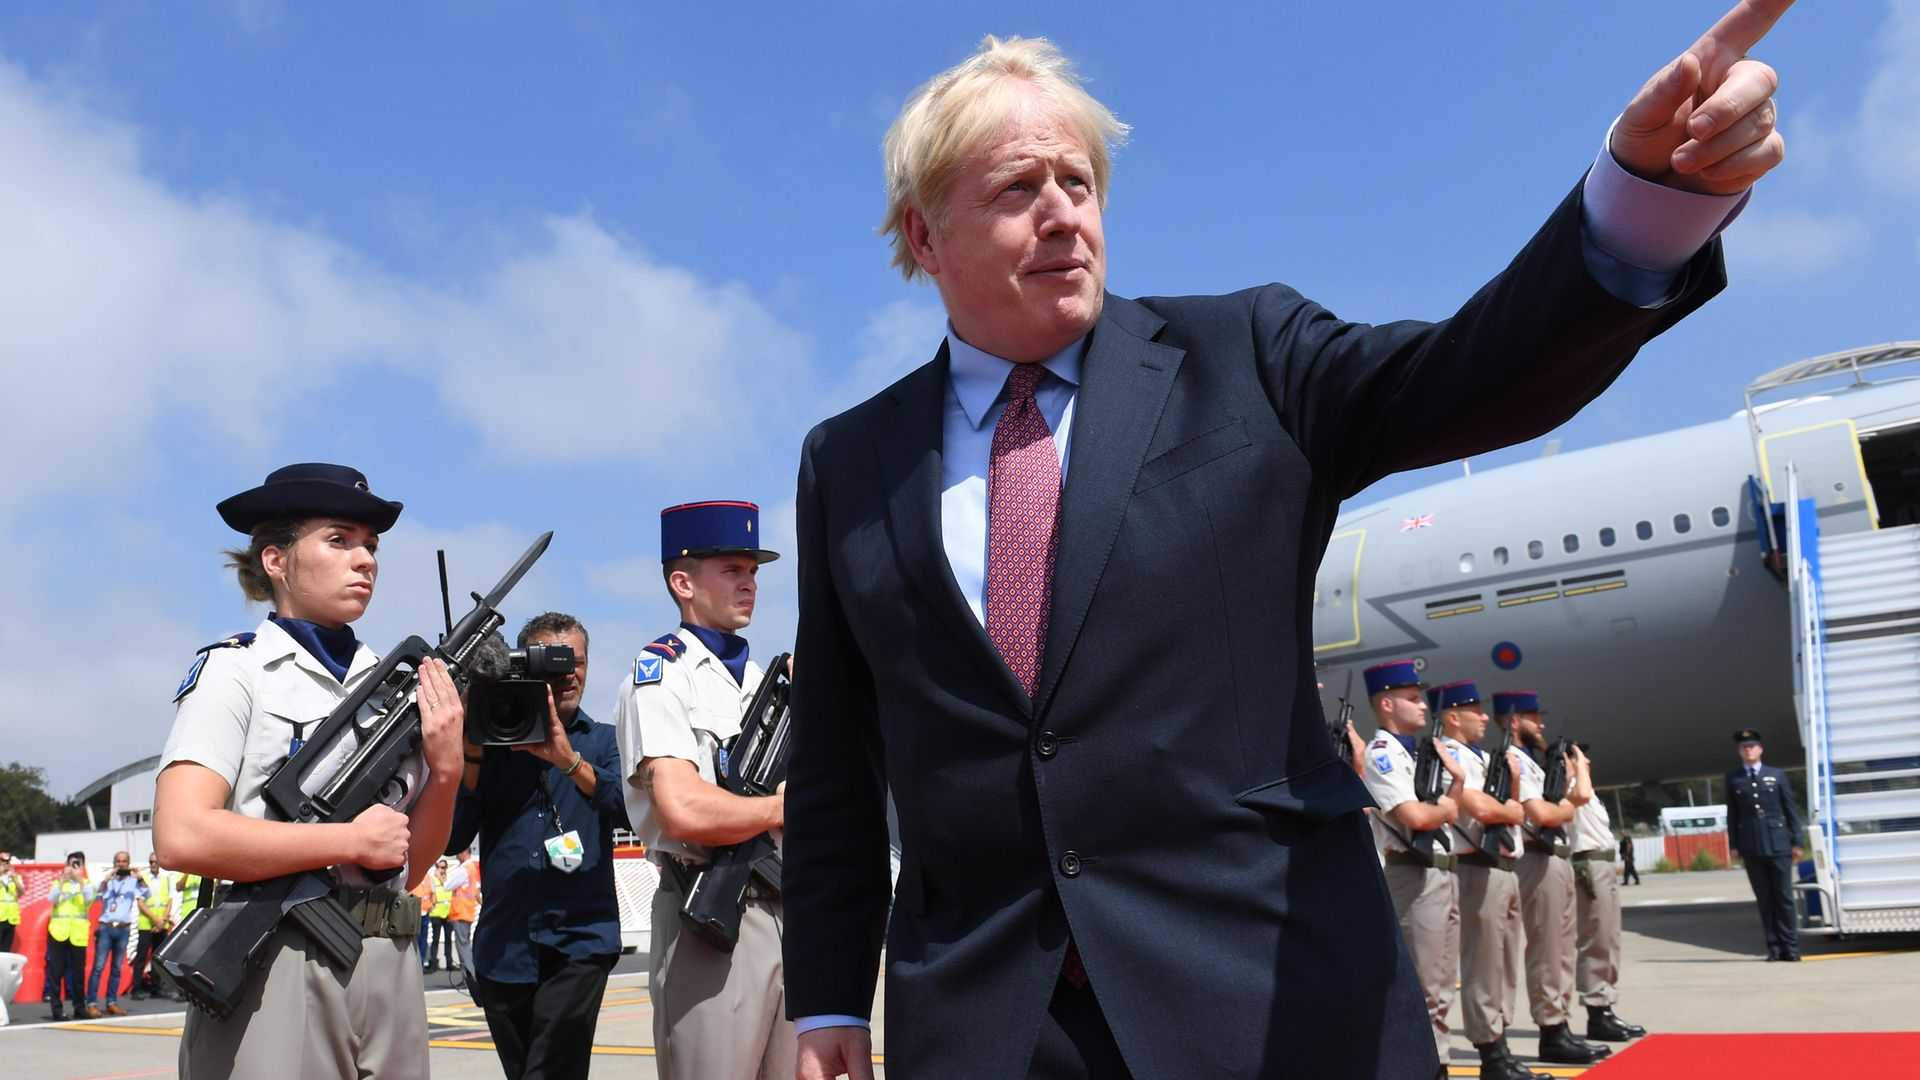 Prime minister Boris Johnson arriving in Biarritz, France, for the annual G7 summit - Credit: PA